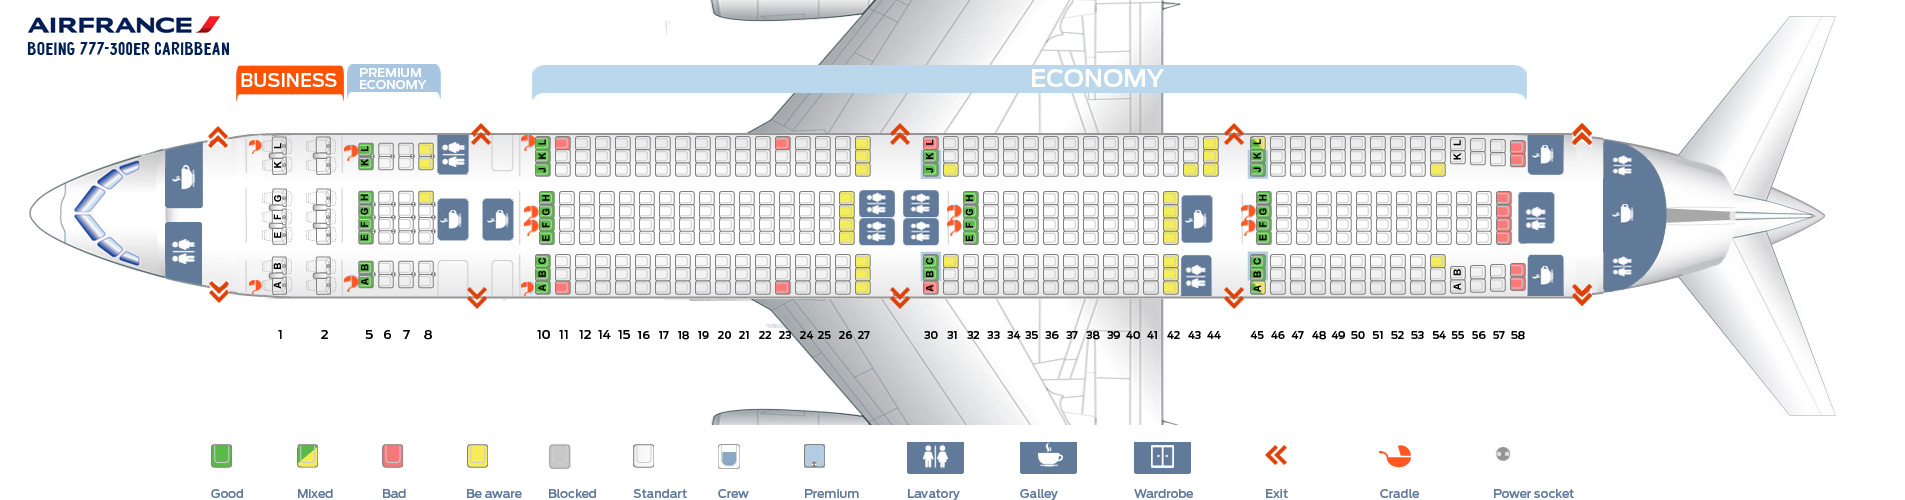 Seat Map Boeing 777-300 ER Carribean Air France